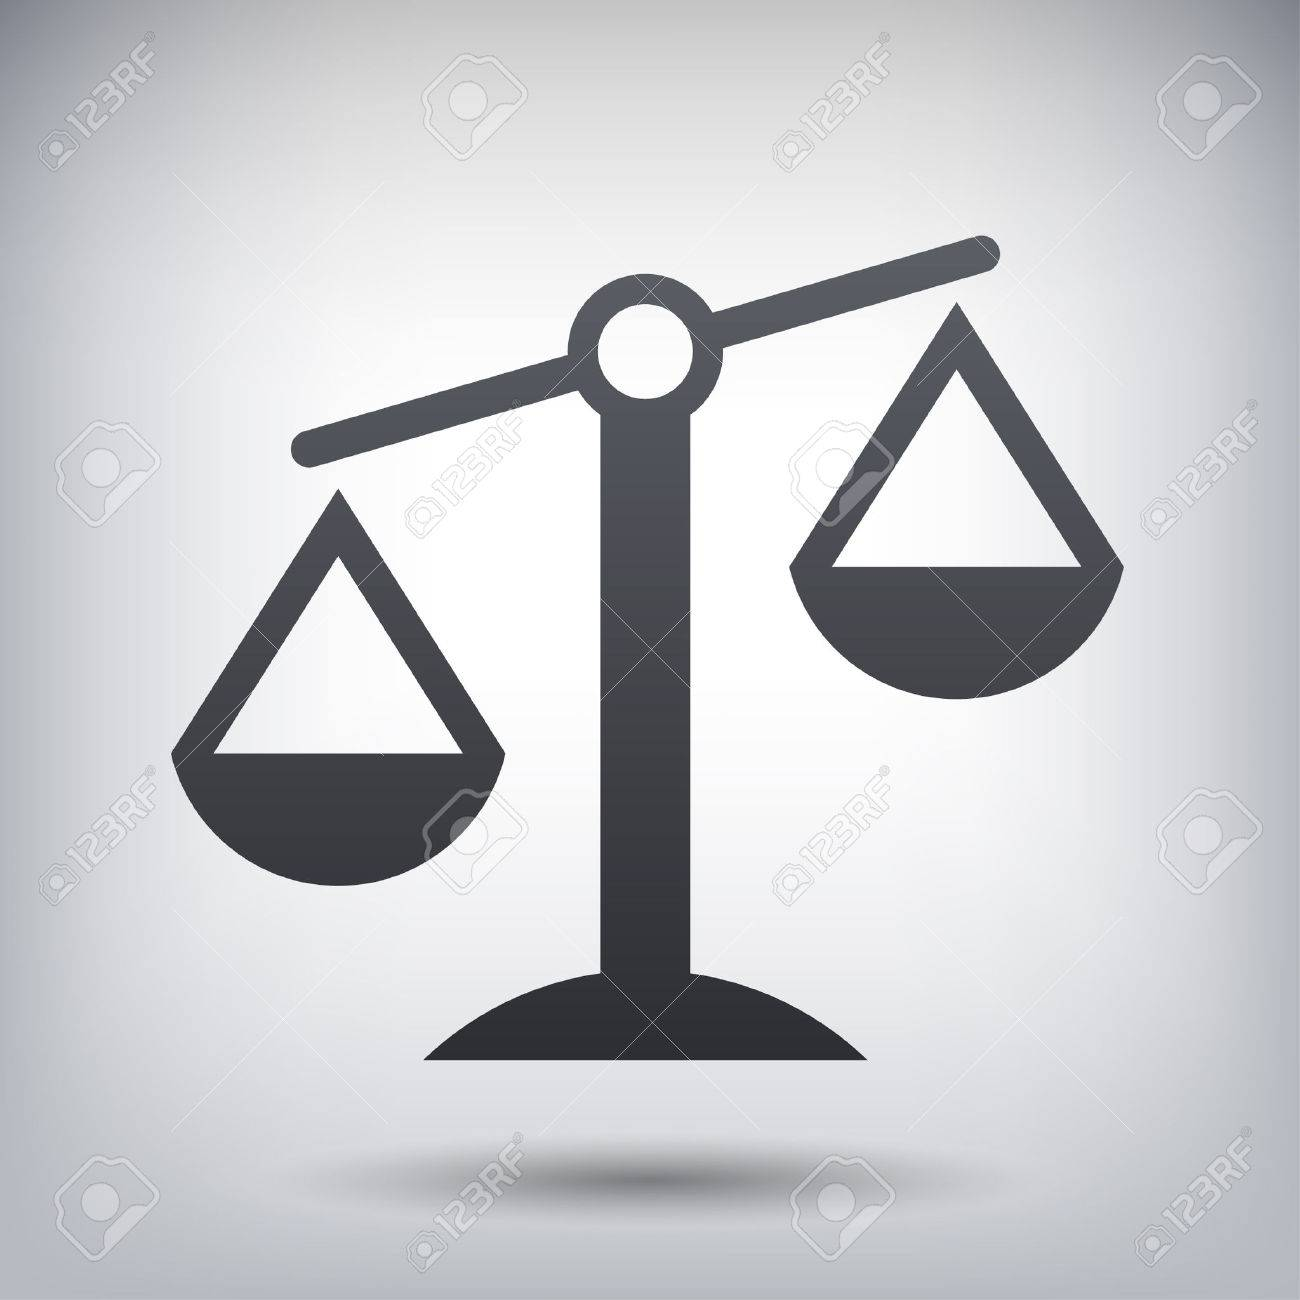 Pictograph of justice scales - 51240848